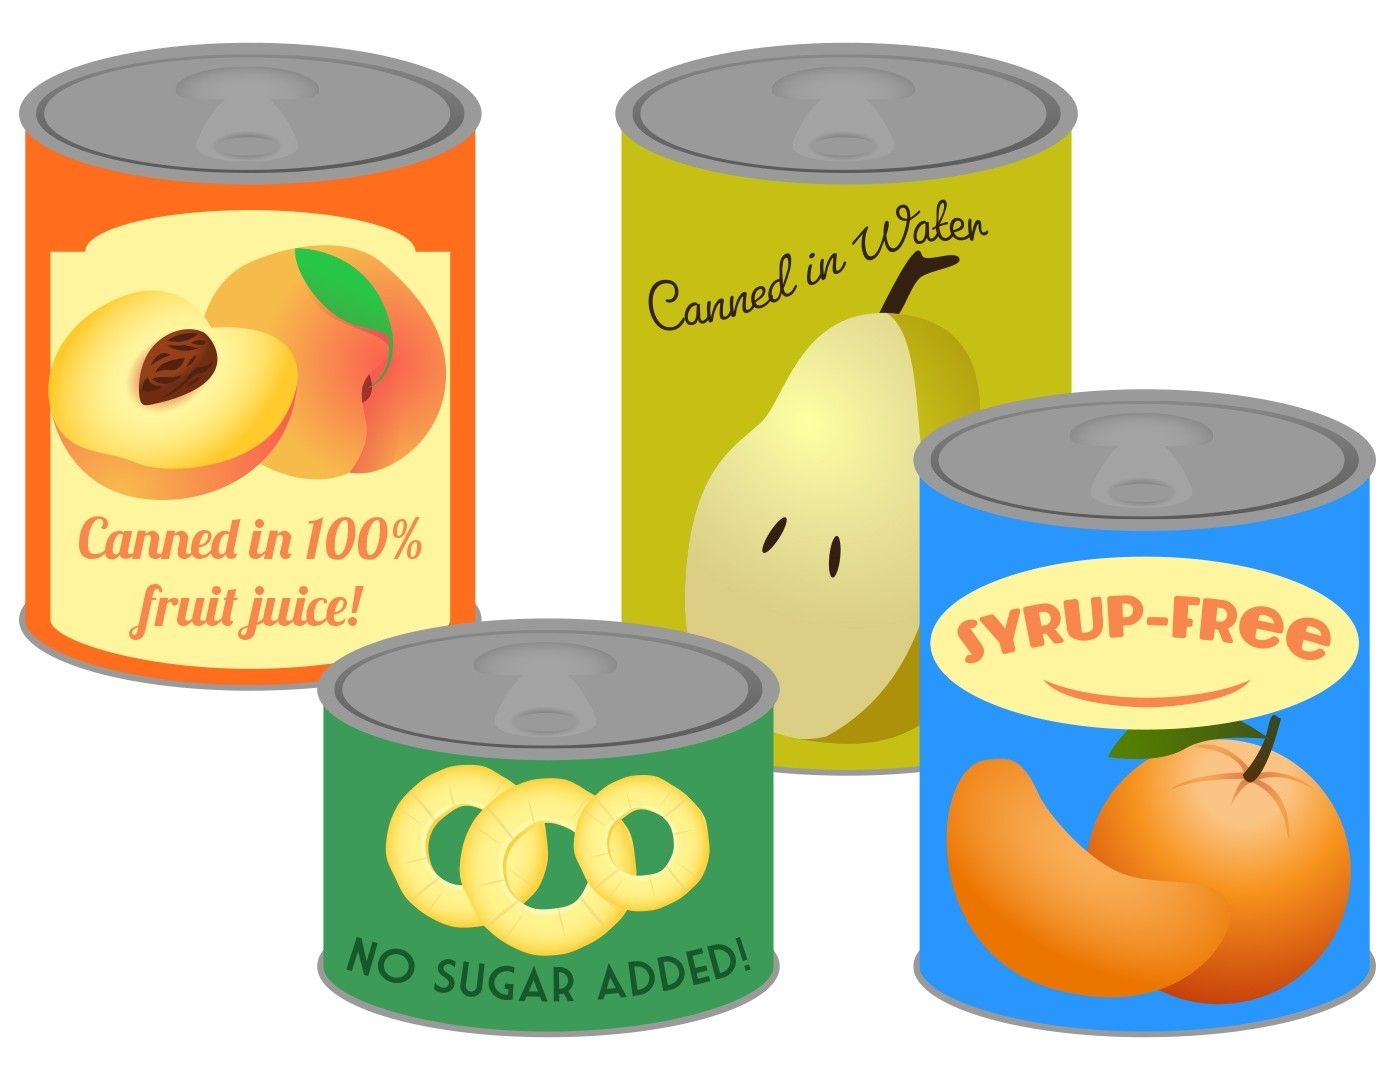 Nutritionist reminded to eat canned food a week should not exceed three times